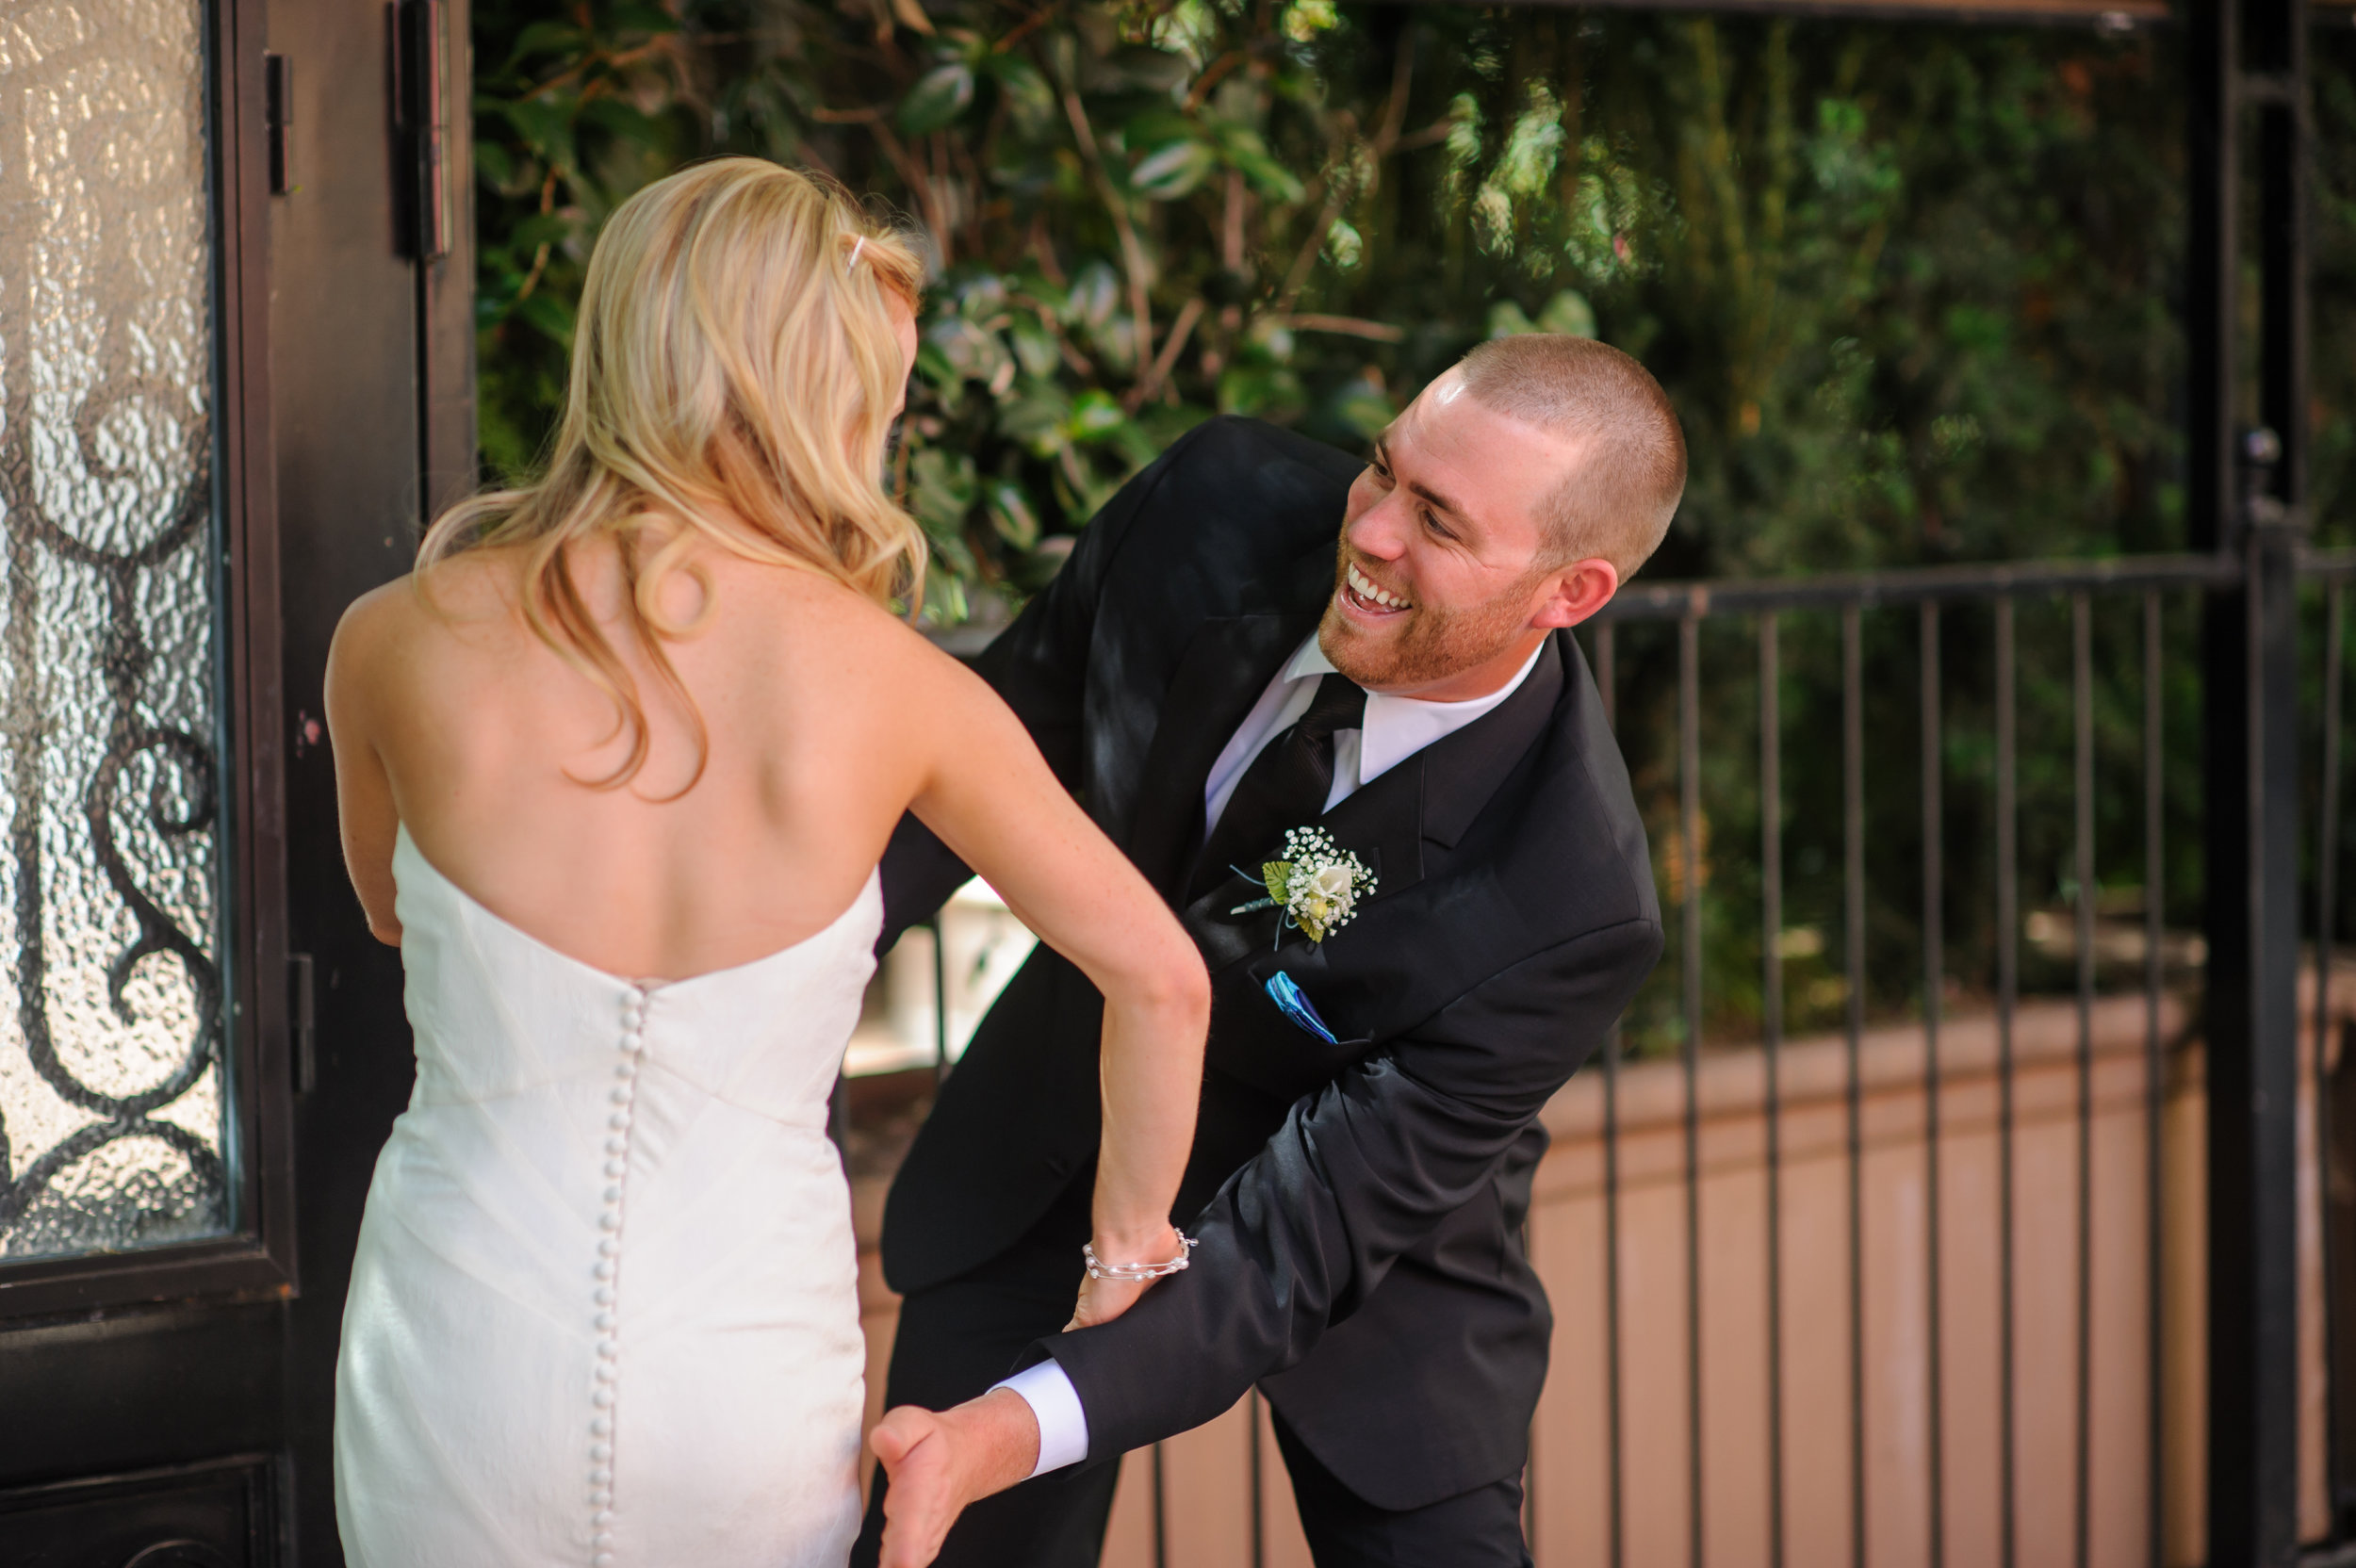 jenelle-brian-001-courtyard-d'oro-old-sacramento-wedding-photographer-katherine-nicole-photography015.JPG